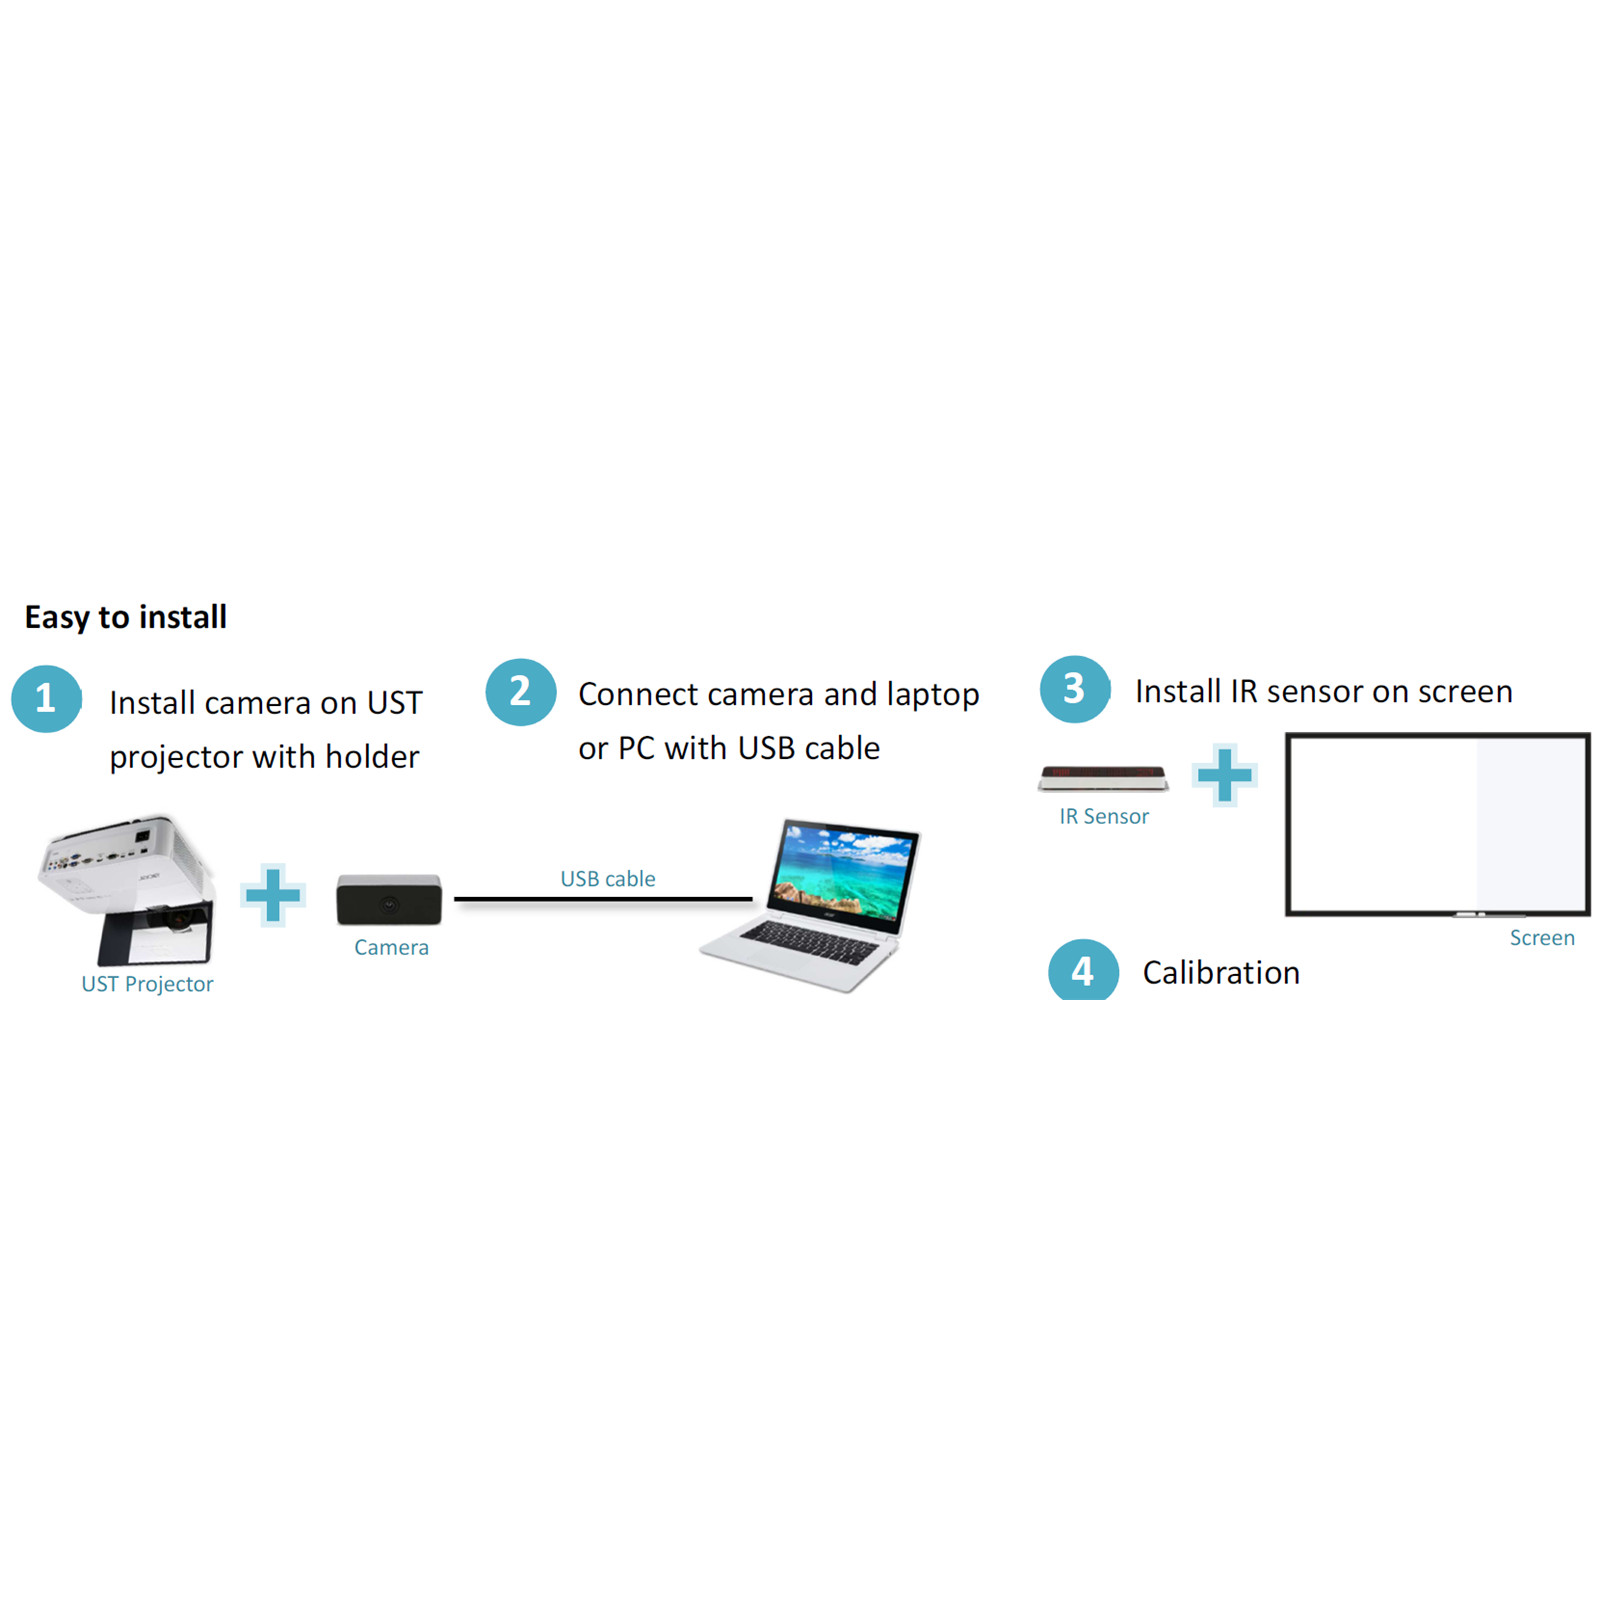 ca24470ed Acer Smart Touch Kit Turn any flat surface into an interactive whiteboard